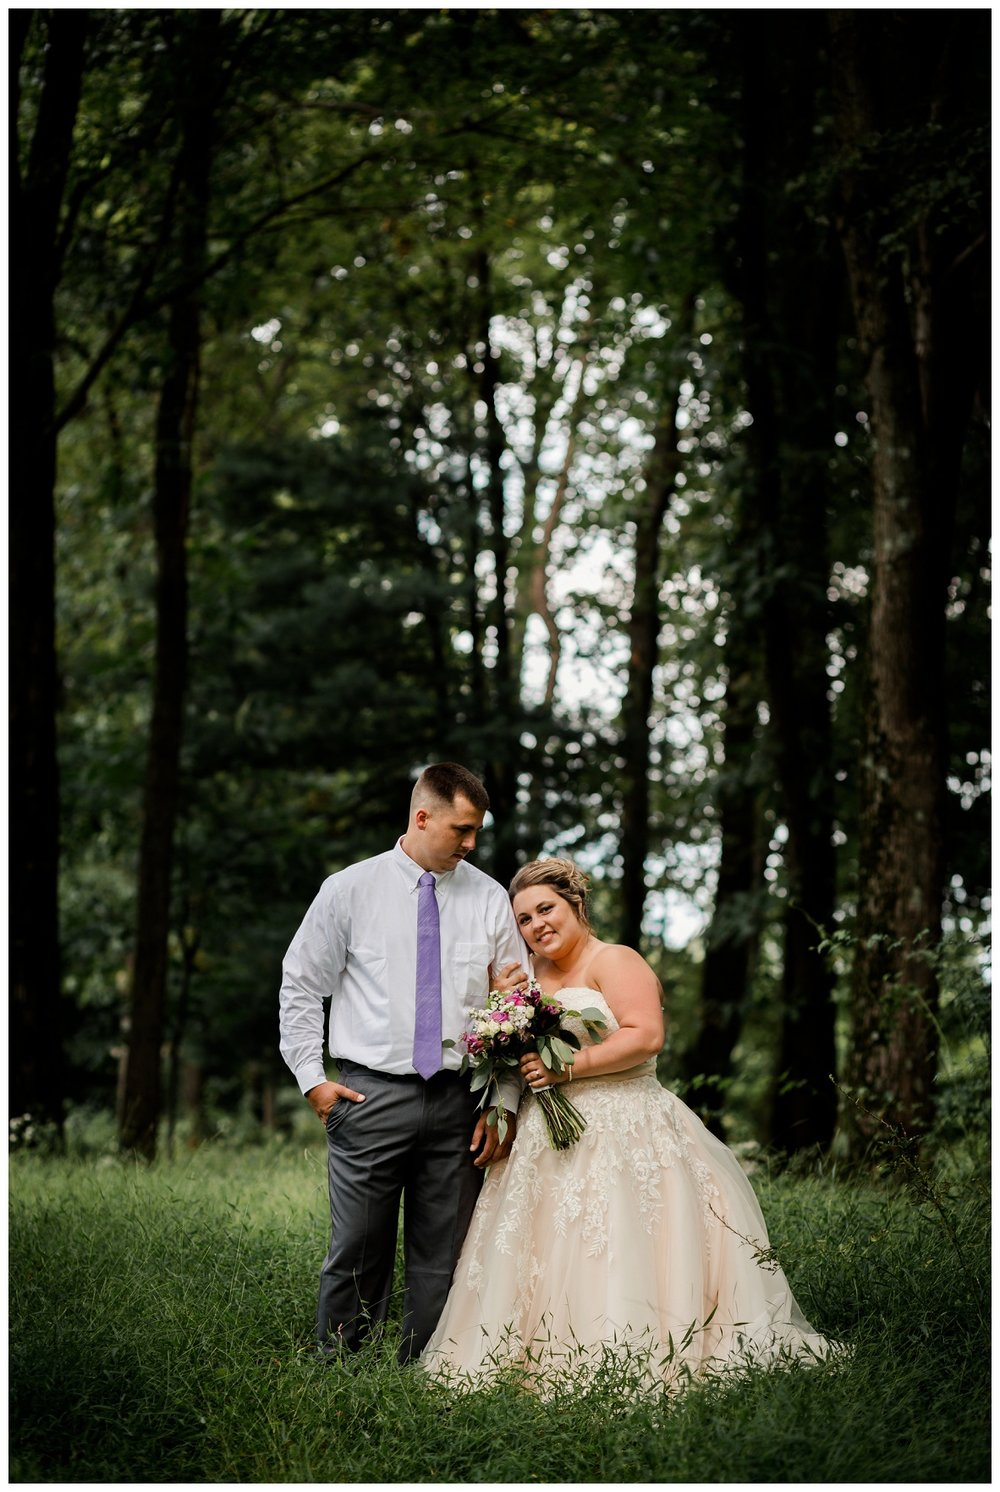 Mr. and Mrs. Thayer_0012.jpg